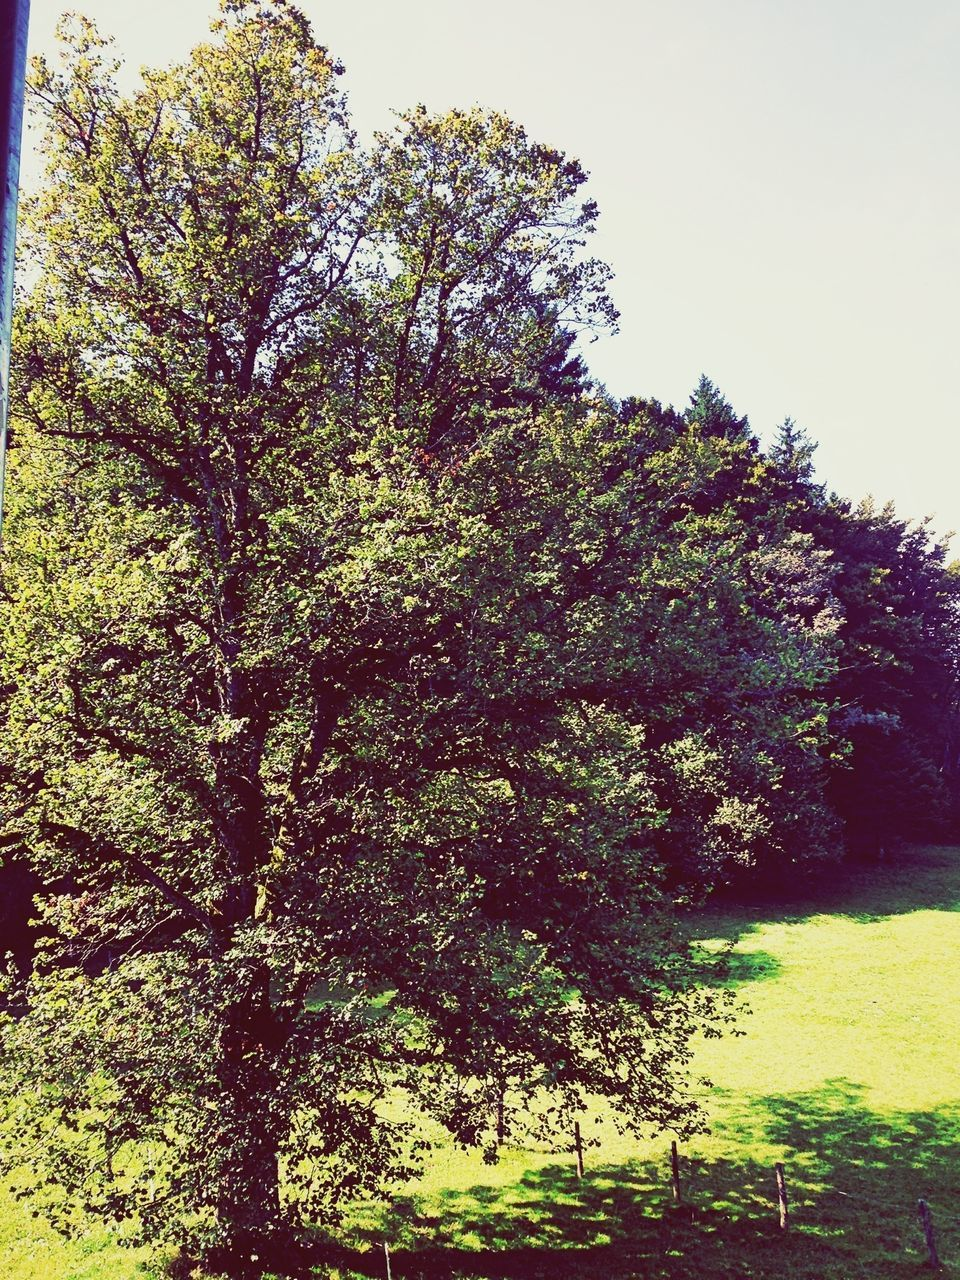 tree, nature, growth, tranquility, no people, day, outdoors, beauty in nature, clear sky, sky